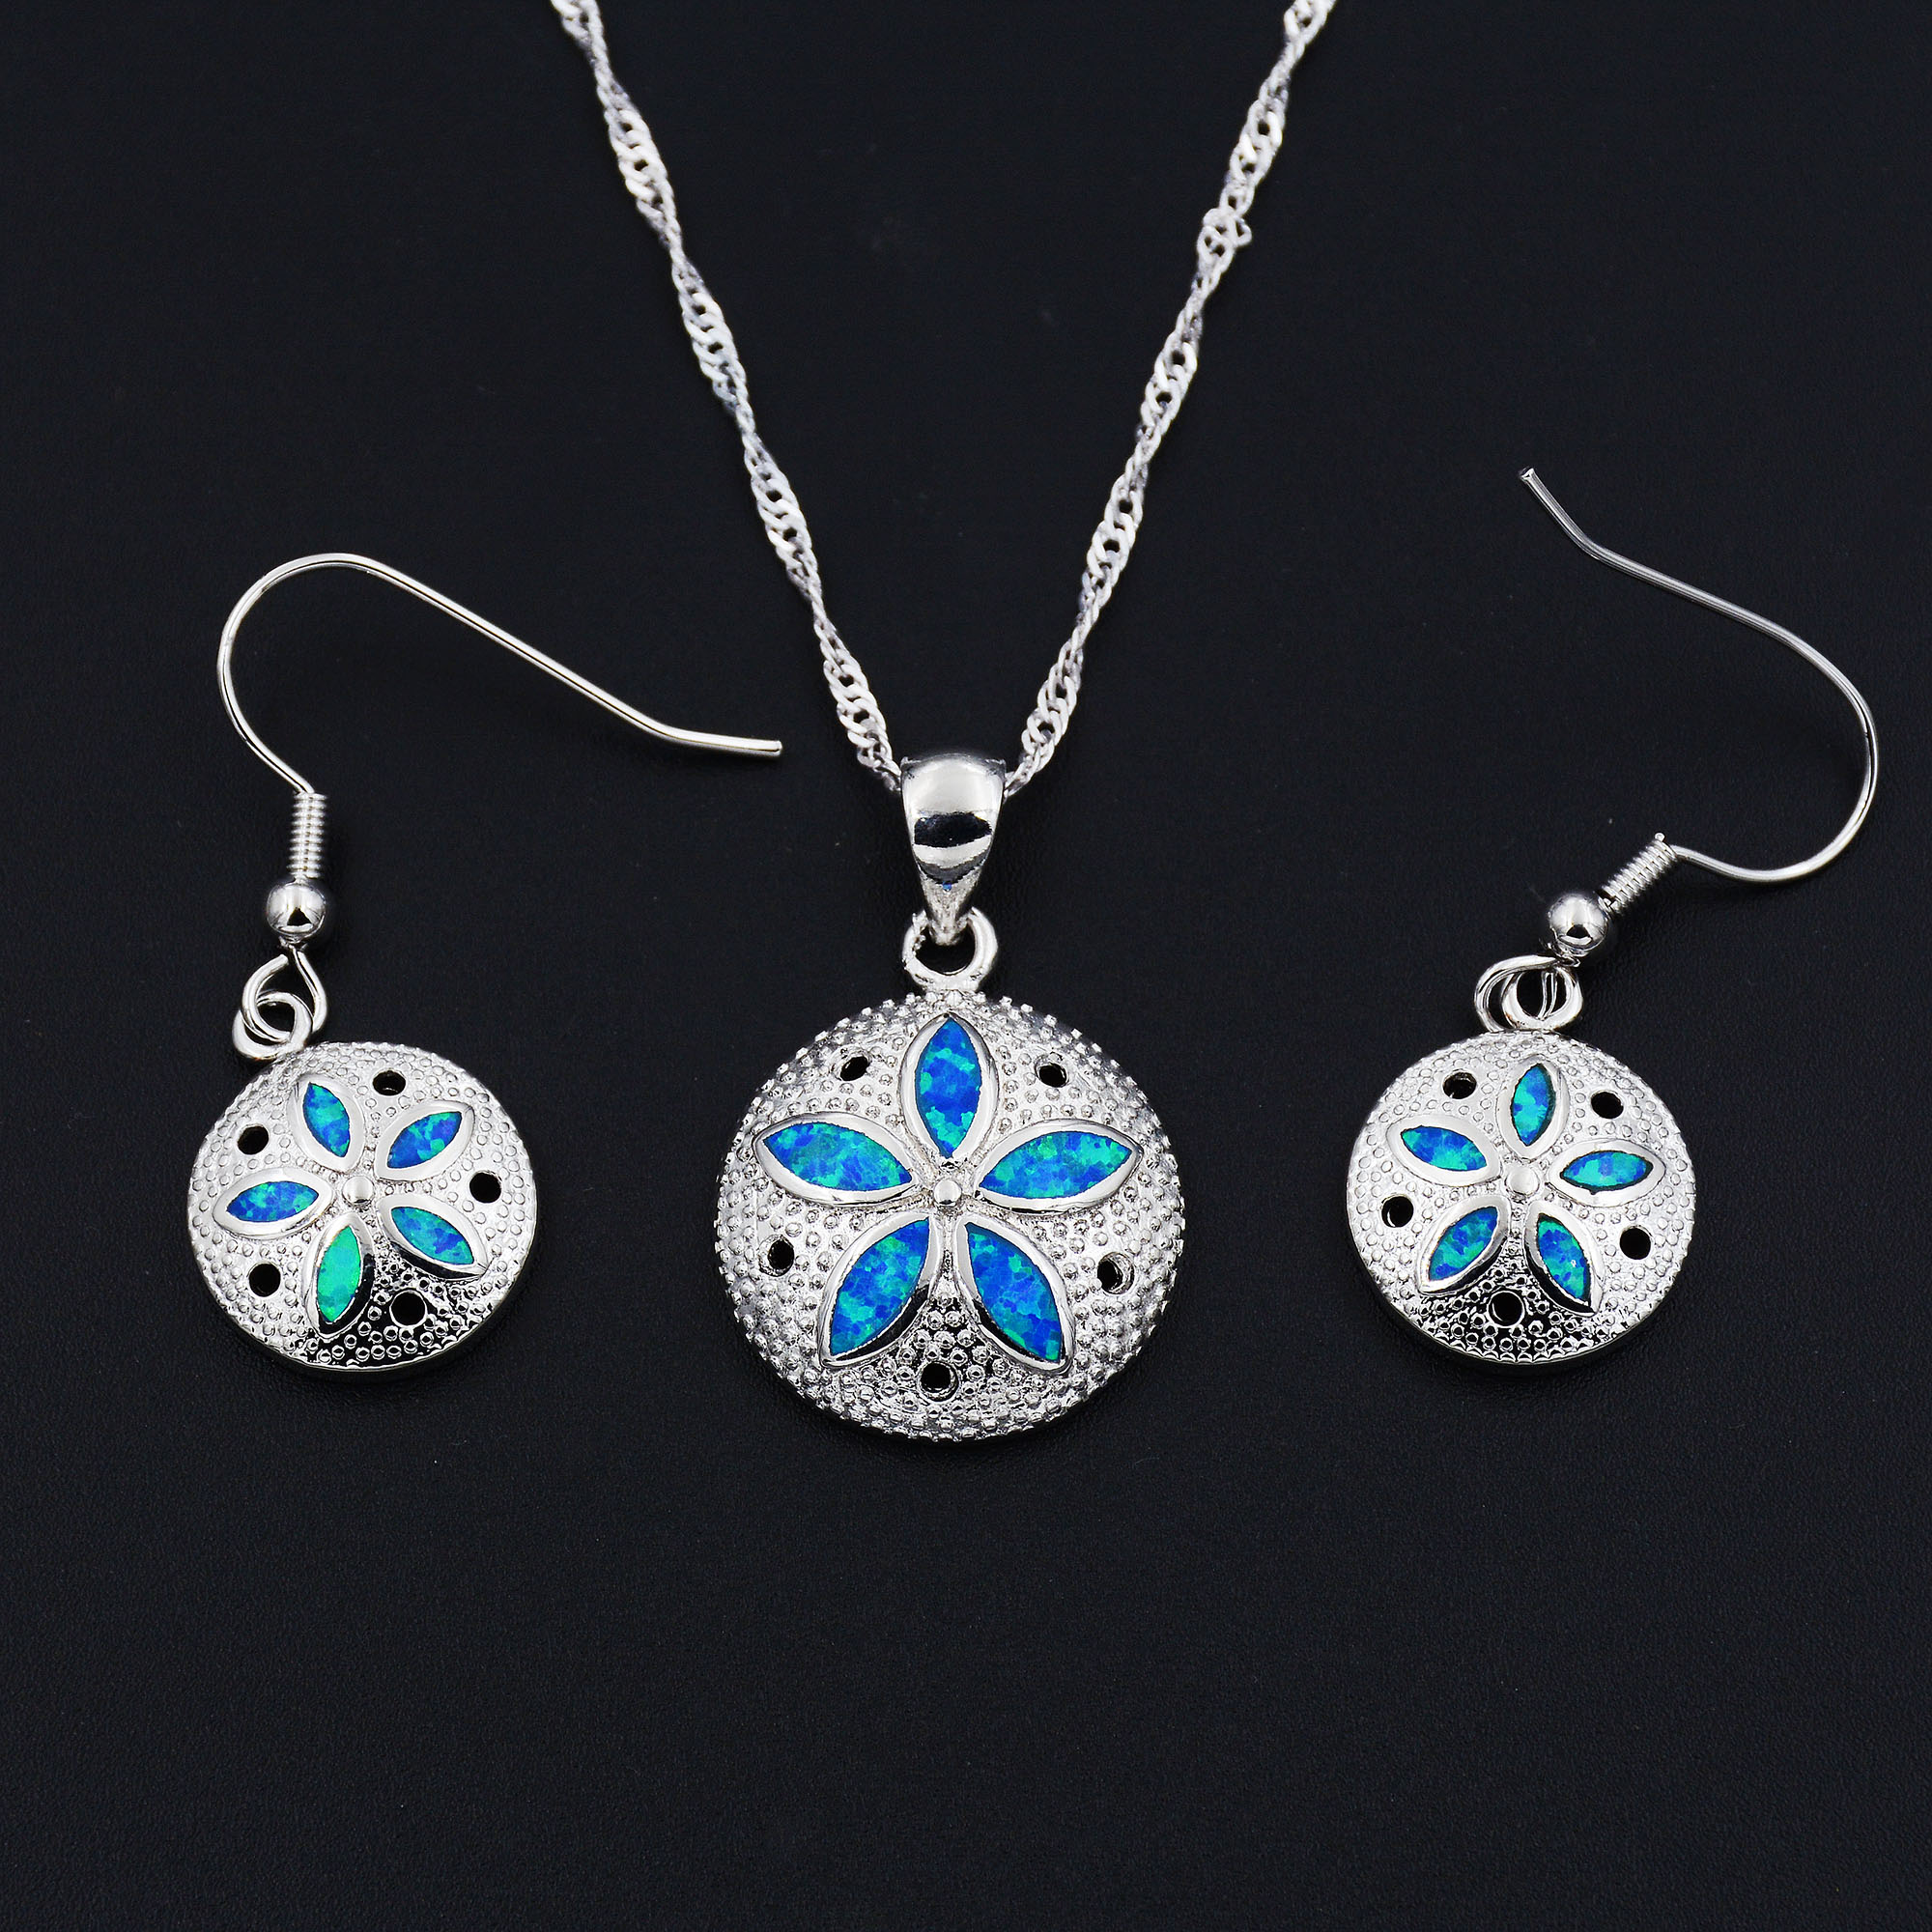 Necklace Earring with Sand Dollar Starfish Artsy Ocean Inspired Jewelry Set